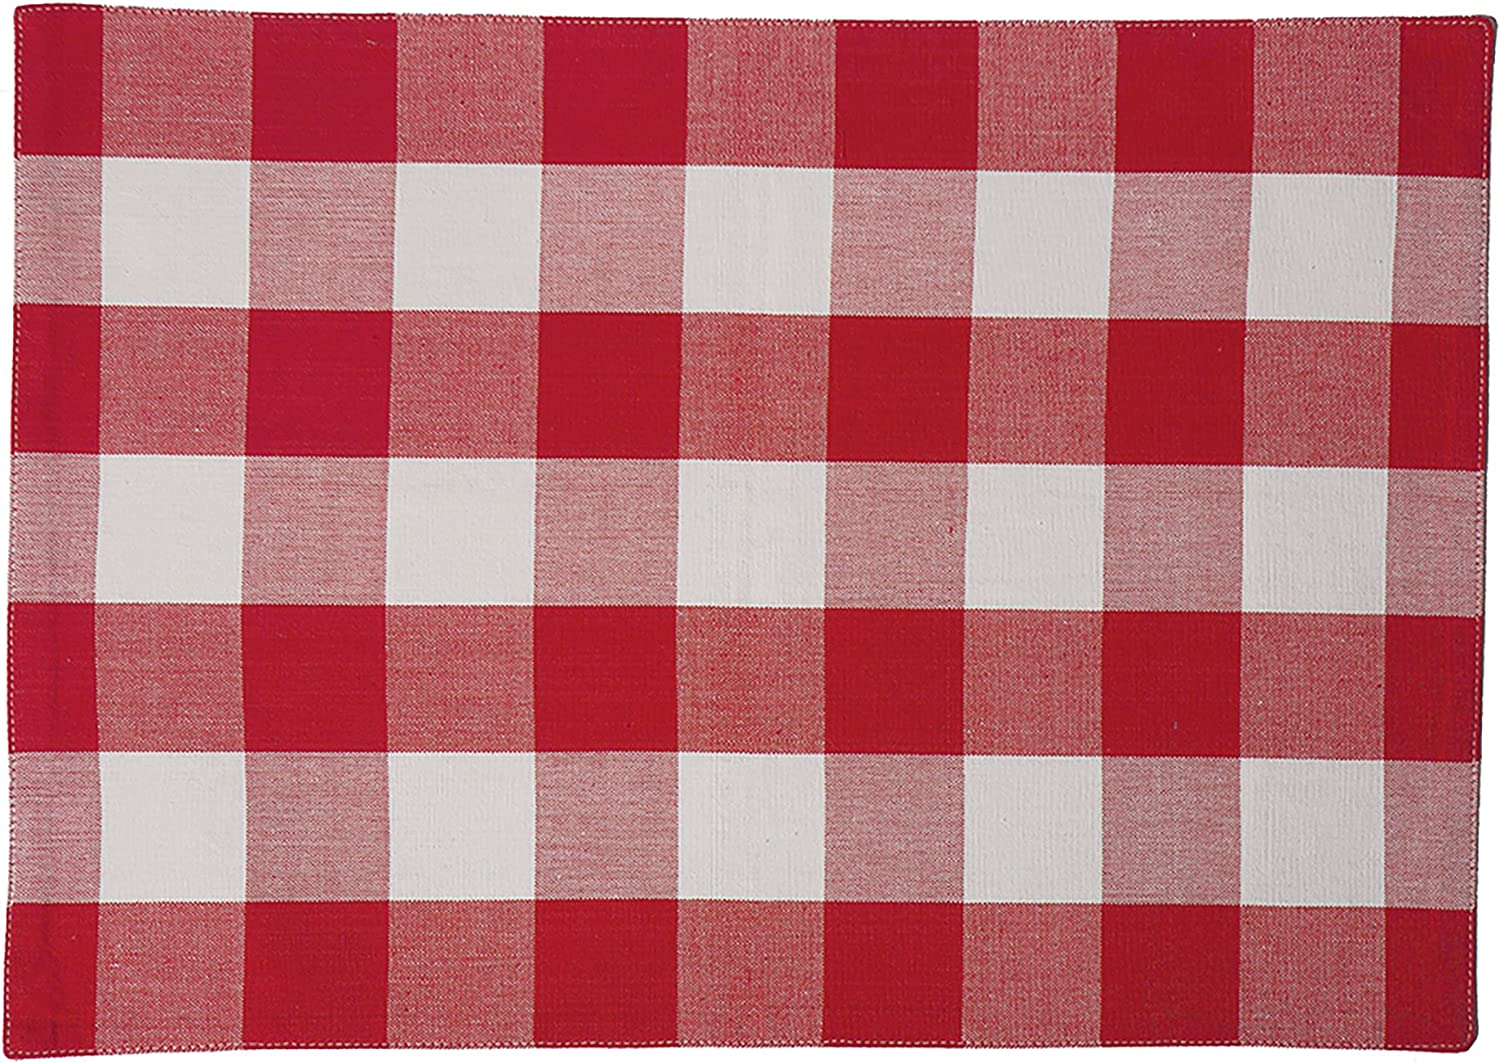 C F Home Franklin 13 X 19 Buffalo Check Gingham Plaid 4th Of July Memorial Day Labor Day Americana Liberty Red Cotton Placemat Set Of 4 Rectangular Placemat Red White Home Kitchen Amazon Com